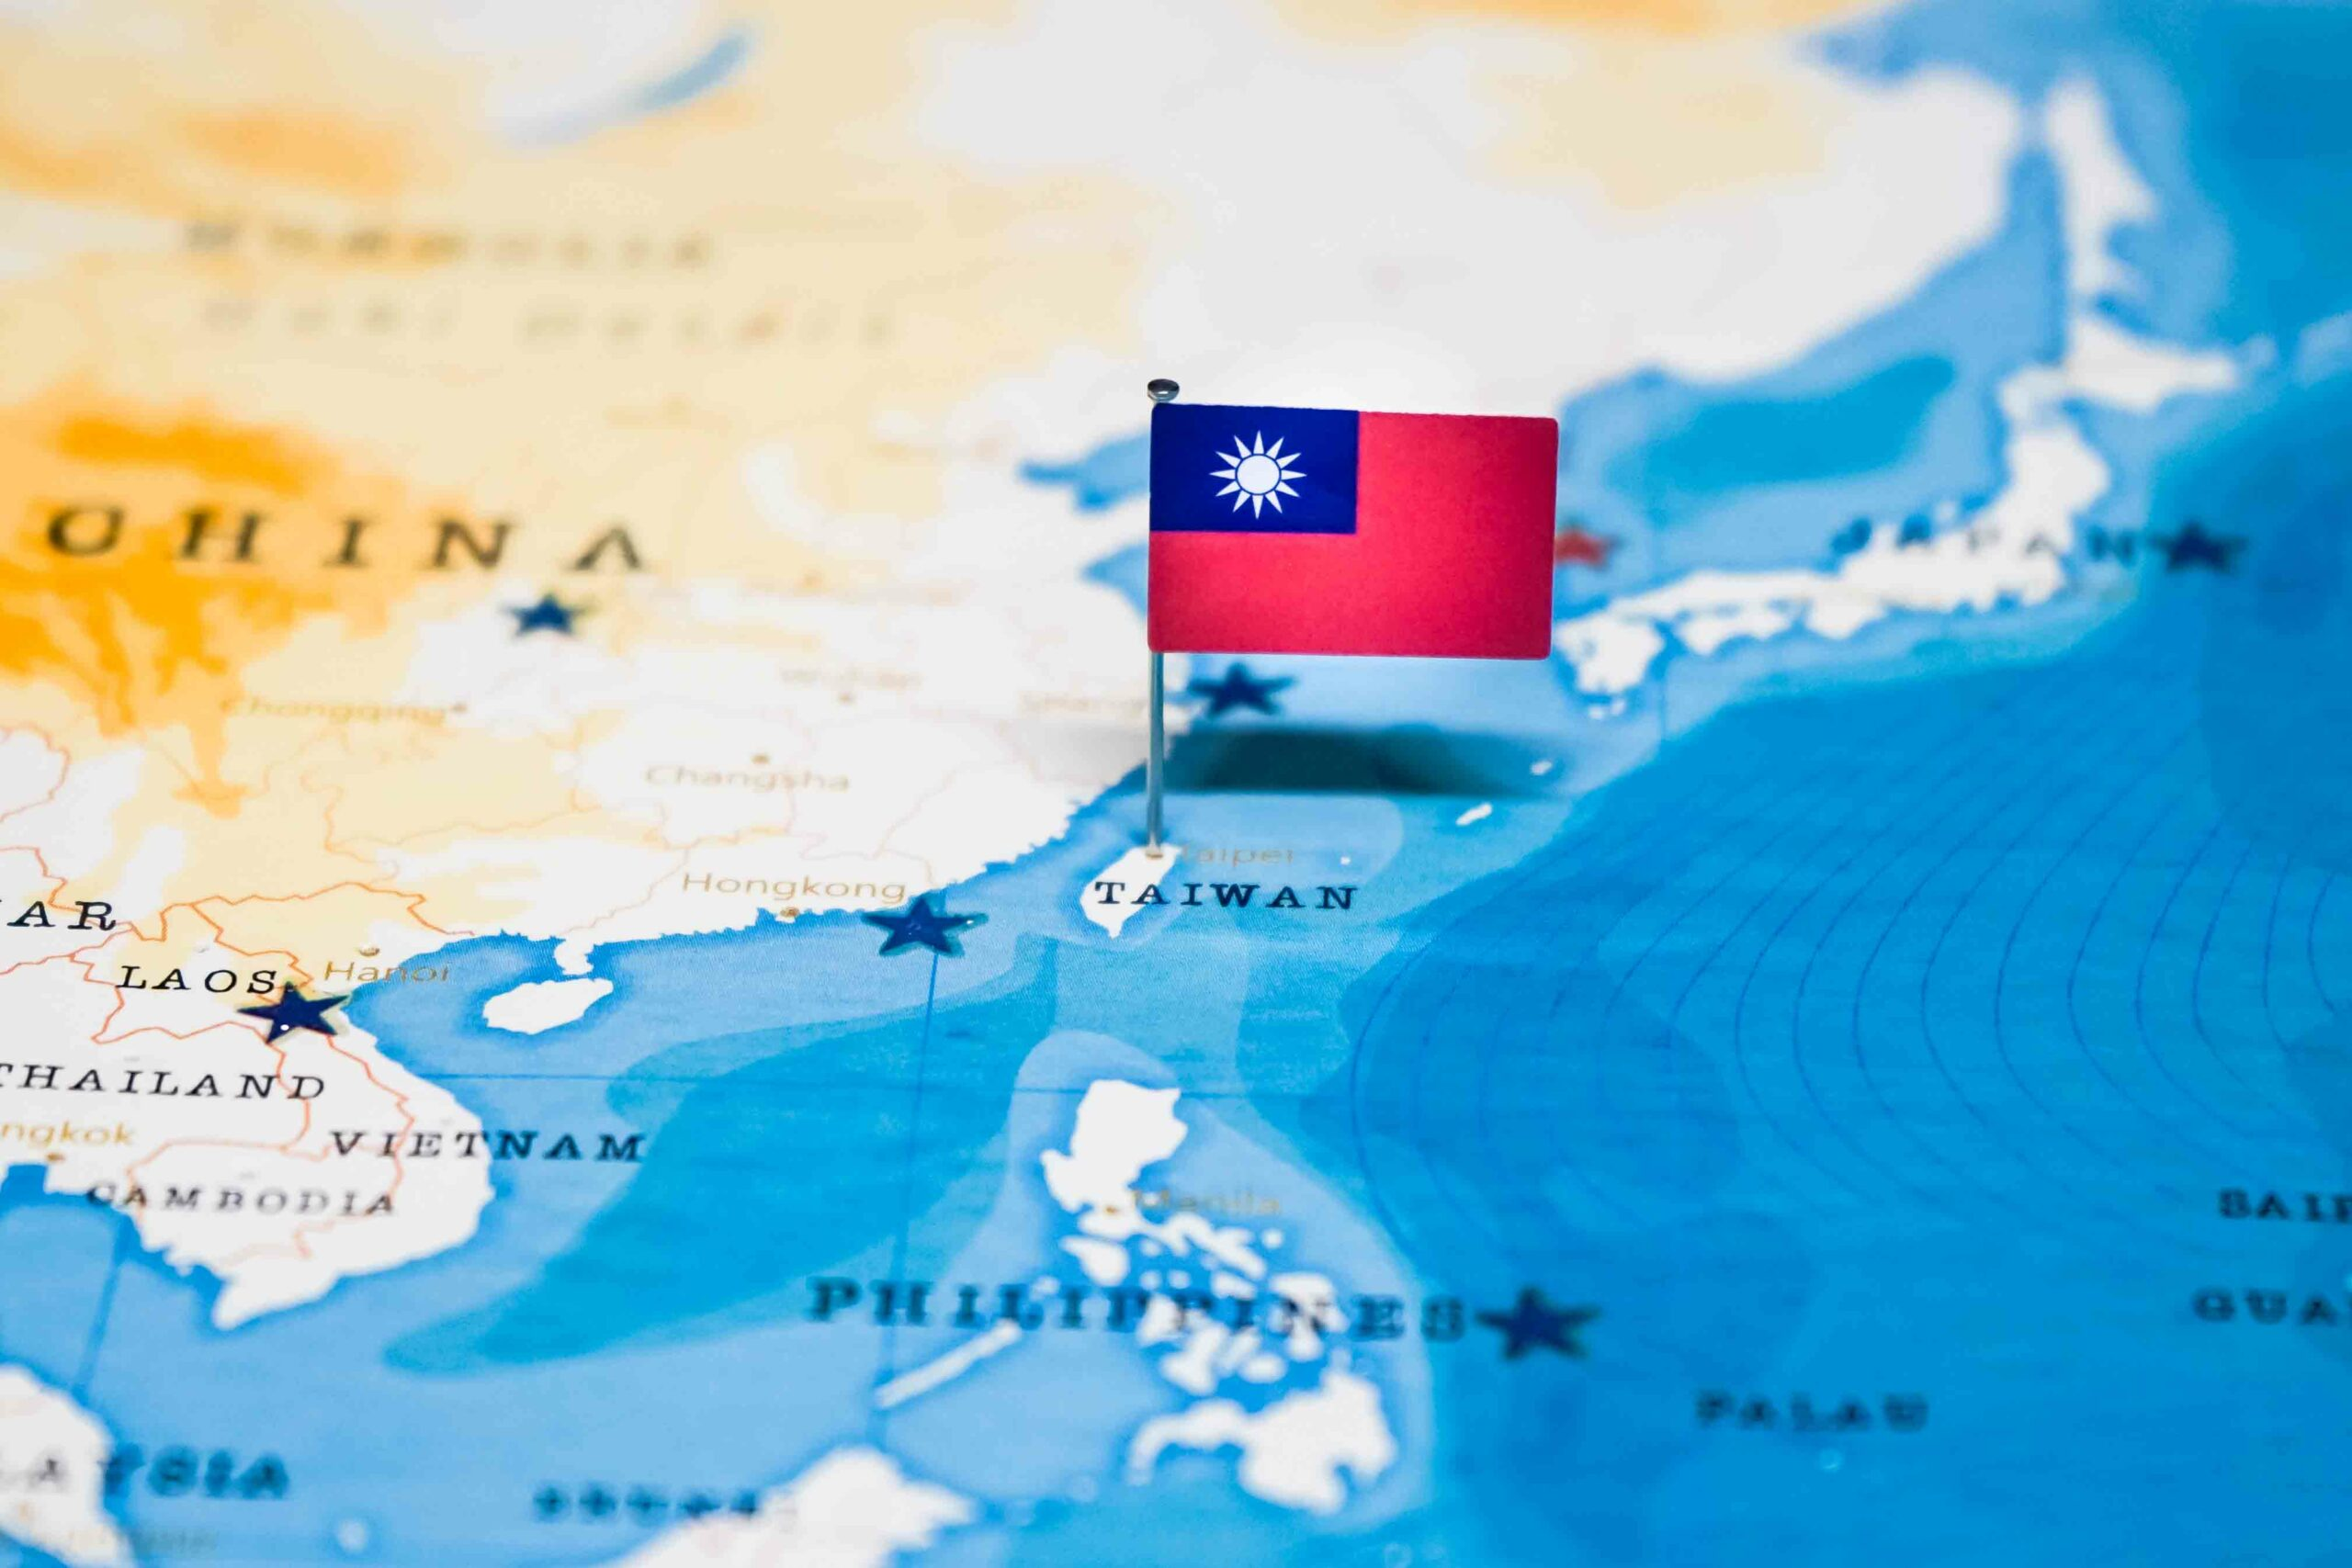 Japan-US join forces on Taiwan political situation Atlas Logistic network